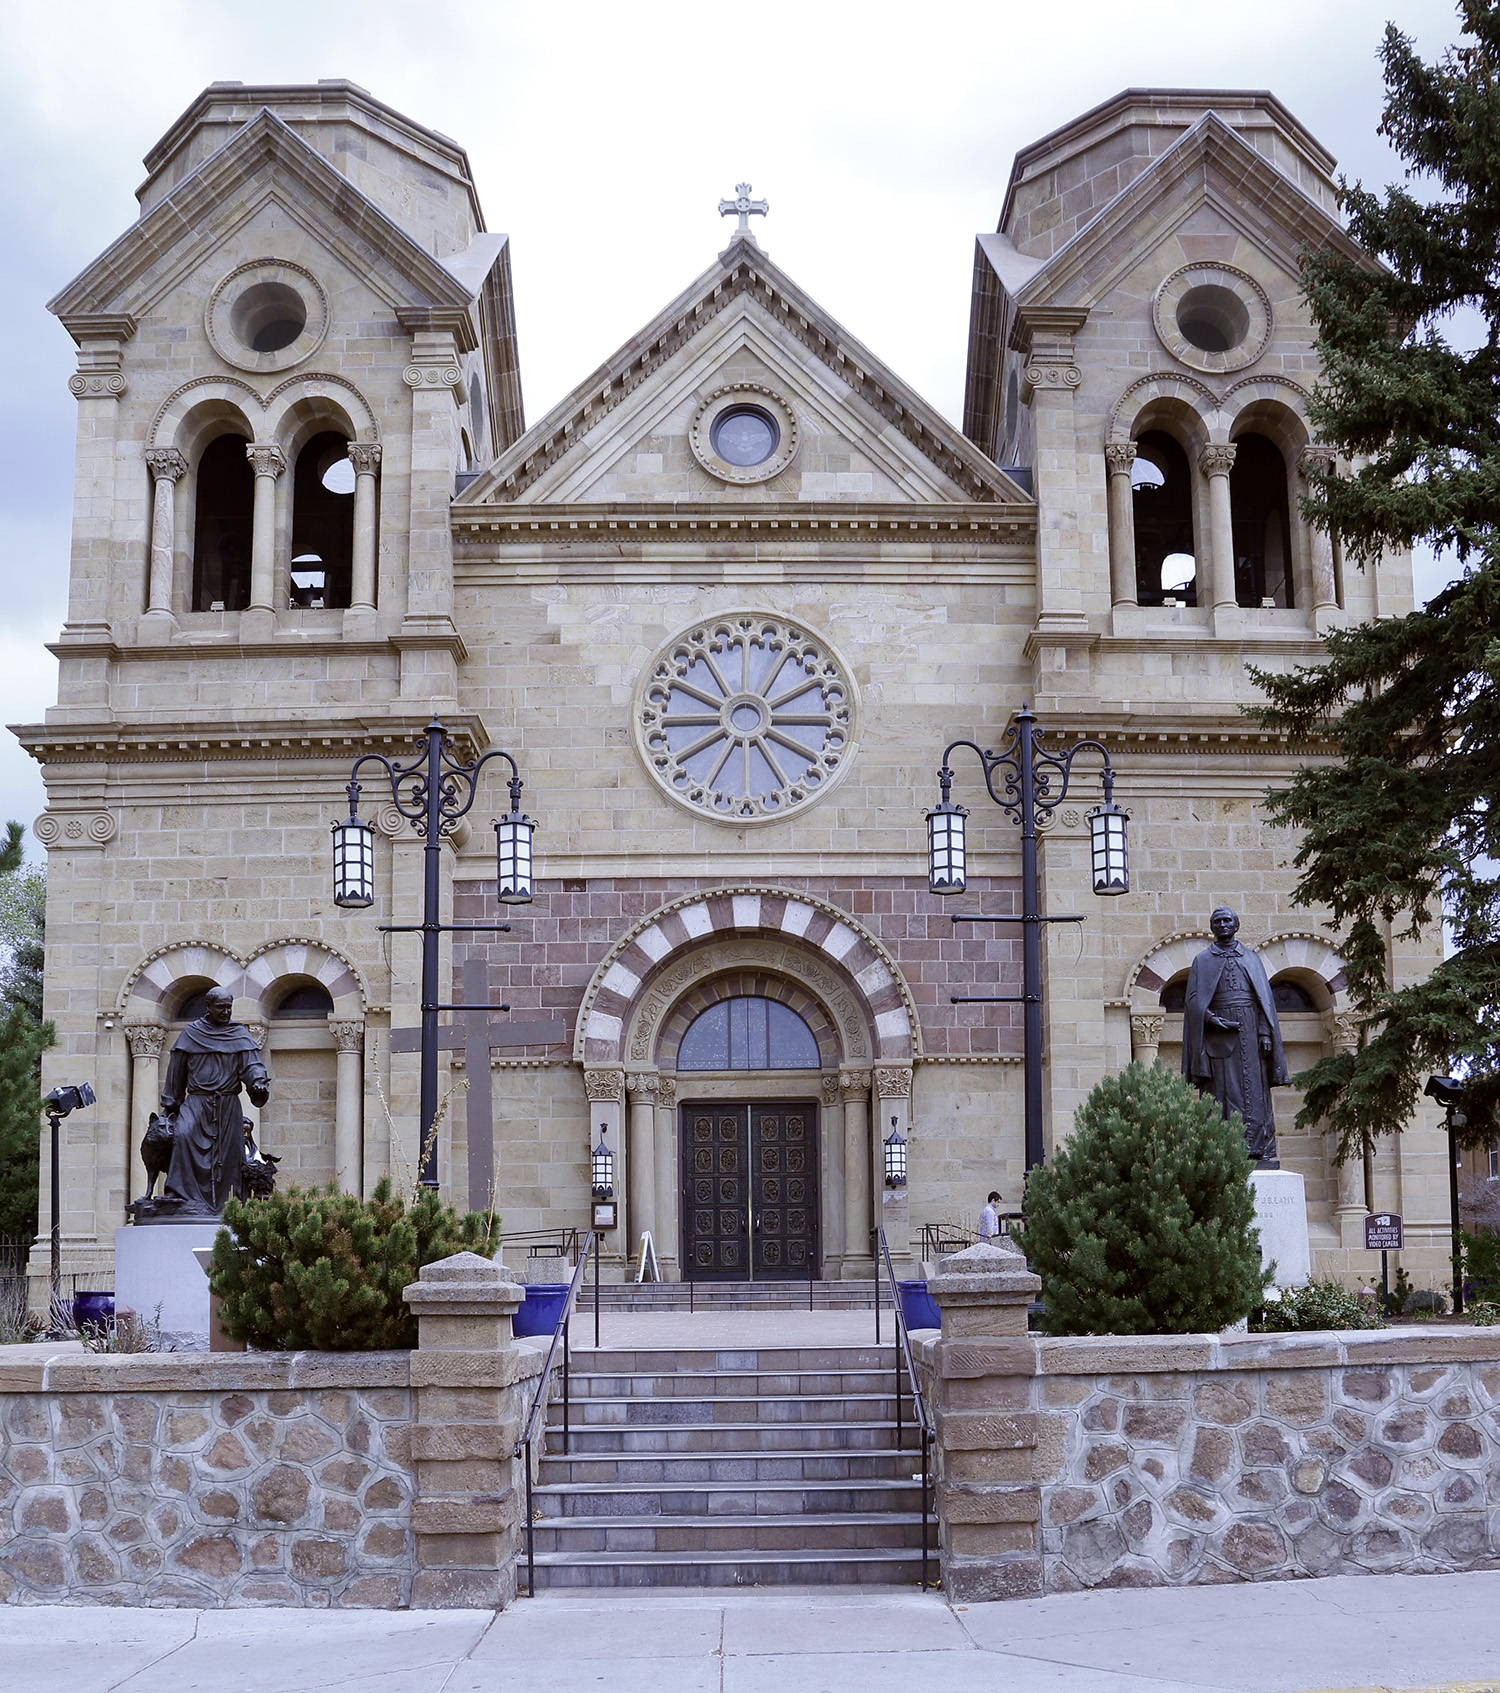 St. Francis Cathedral